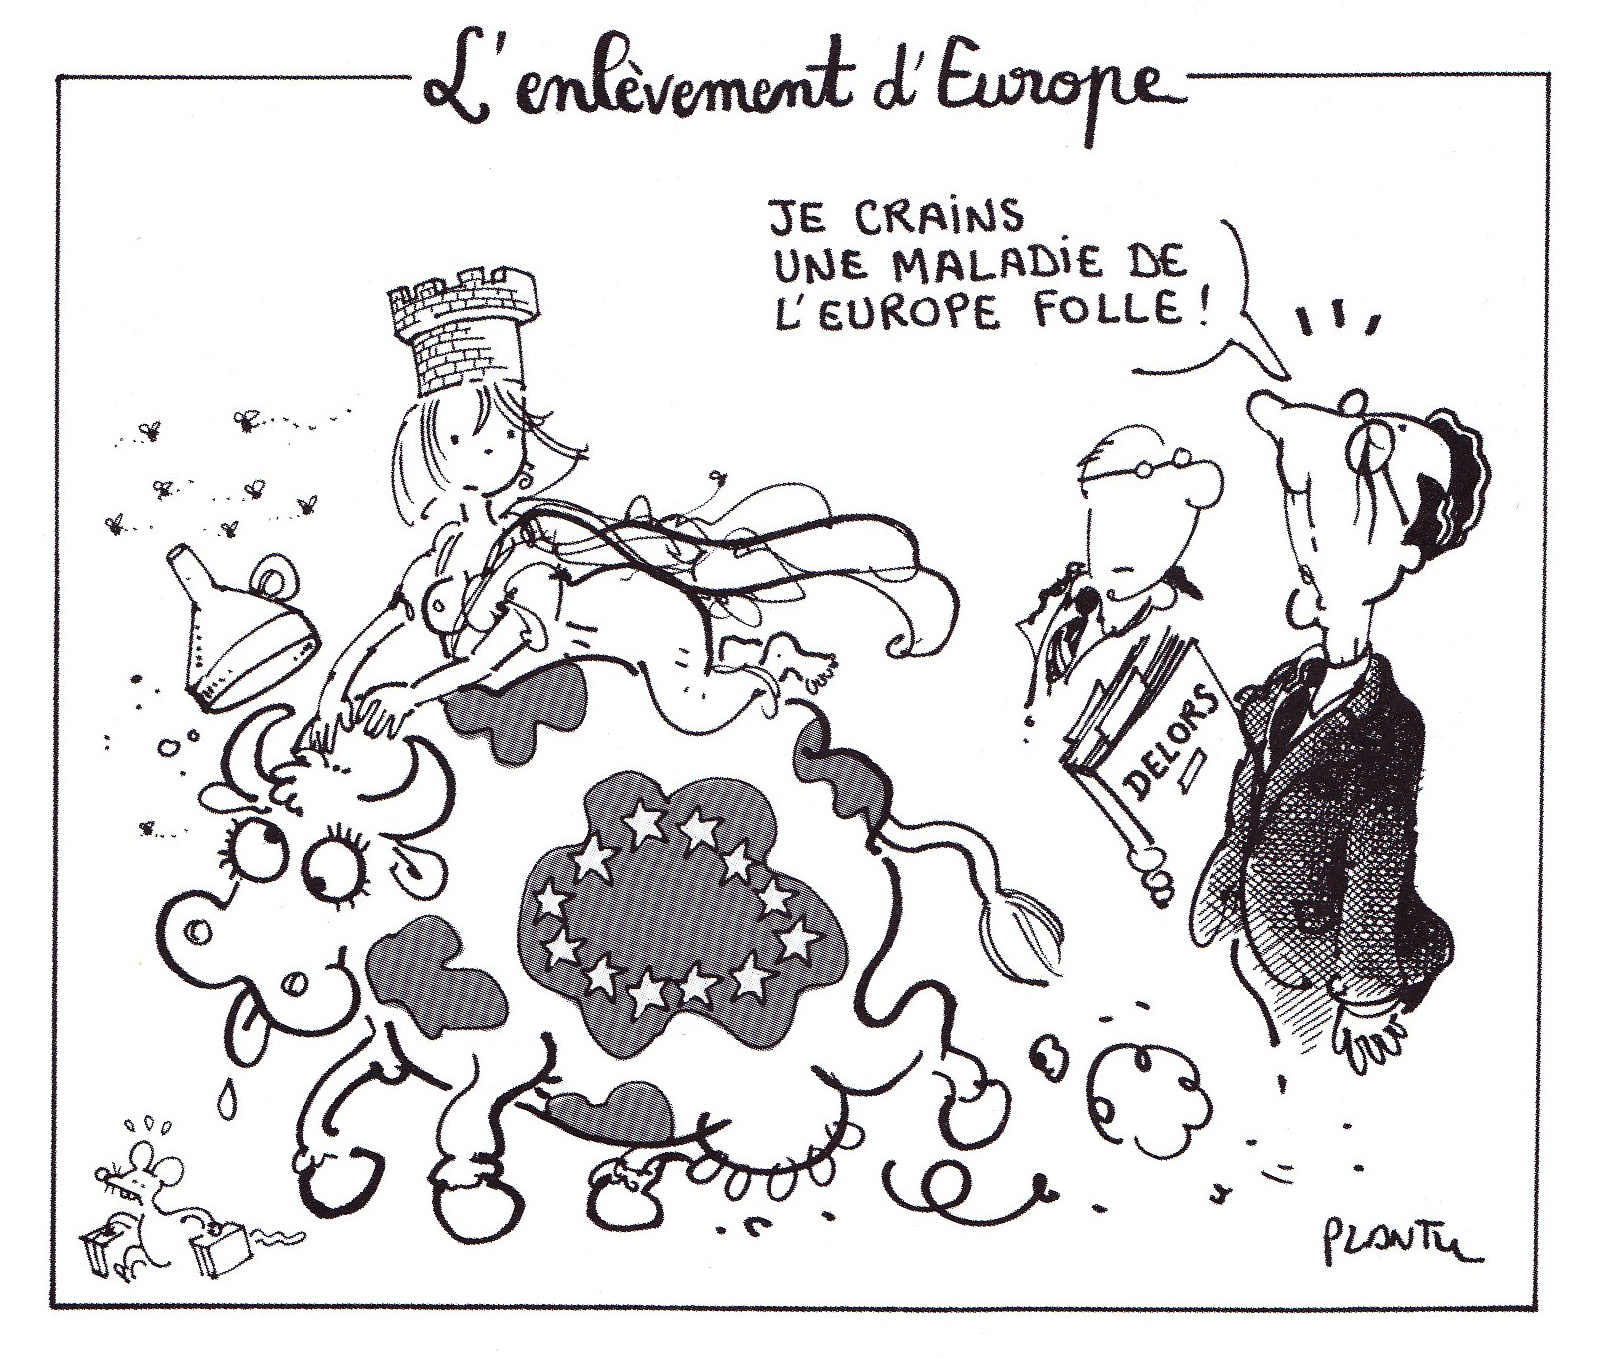 Plantu_L'Enlevement_d'Europe_1996